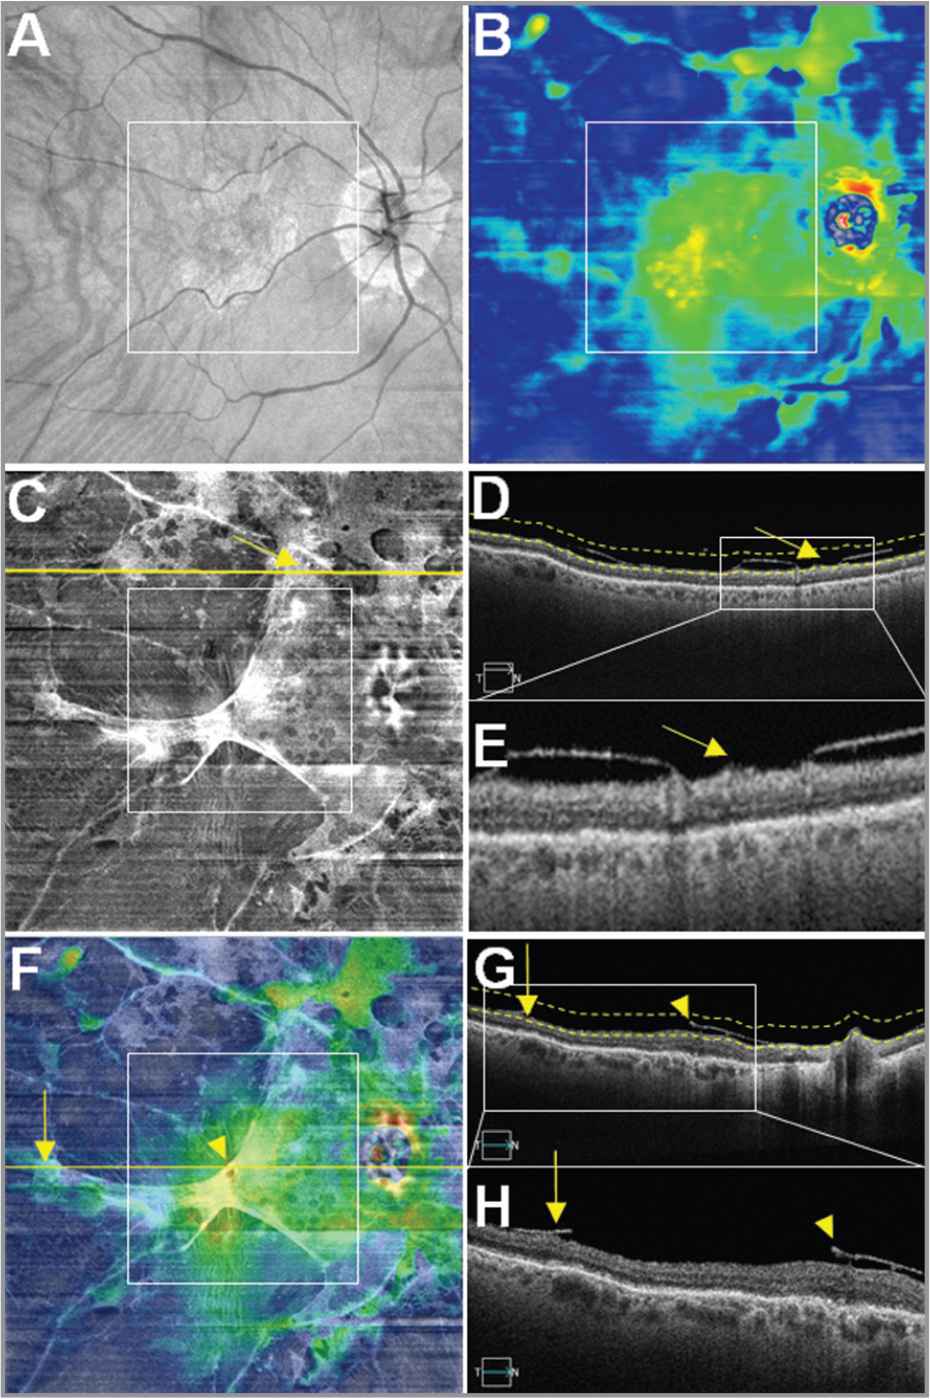 Case No. 5: Multi-segmented images from a single 12 mm × 12 mm swept-source optical coherence tomography (SS-OCT) scan of an epiretinal membrane (ERM) associated with incomplete posterior vitreous detachment (PVD) in the right eye of a 95-year-old woman. The white square boxes centered on the fovea in panels A, B, C, and F represent a 6 mm × 6 mm field of view (FOV). (A) OCT fundus image. Note preponderant vessel tortuosity in the posterior pole emerging from the inferior arcade. (B) Retinal thickness map (RTM) depicts a diffuse retinal thinning probably related to the patient age and myopia. (C) Vitreoretinal interface (VRI) en face image. The image shows a hyperreflective ERM. Some parts of the retinal surface present a fusion of both ERM and posterior hyaloid and highly reflect the light beam giving rise to well-lighted white signal. Yellow arrows in images C, D, and E emphasize the fusion between the ERM and the posterior hyaloid. (D) B-scan corresponding to the yellow line outside the 6 mm × 6 mm white square shown in image C. Dashed lines define the upper and lower boundaries of the VRI en face slab. (E) Magnification of the white rectangle of the image D. Yellow arrow points the zone of fusion between the posterior hyaloid and the ERM that is hyperreflective in the VRI slab. (F) Overlay of Panel B (60% transparency) on top of Panel C. Yellow horizontal line represents the foveal B-scan. Yellow vertical arrow in Panels F, G, and H highlight the extent of the ERM outside the 6 mm × 6 mm FOV. Yellow arrowheads point the intense hyperreflectivity of the complex made of the posterior hyaloid and the ERM. (G) Foveal B-scan. Dashed lines define the upper and lower boundaries of the VRI en face slab. (H) Magnified B-scan from within the white square shown in Panel G. The ERM extends from inside the 6 mm × 6 mm FOV (yellow arrowhead) to outside the 6 mm × 6 mm FOV (yellow vertical arrow). Yellow vertical arrow specifies the extent of the ERM that stretches outside the 6 mm × 6 mm FOV in the temporal area.